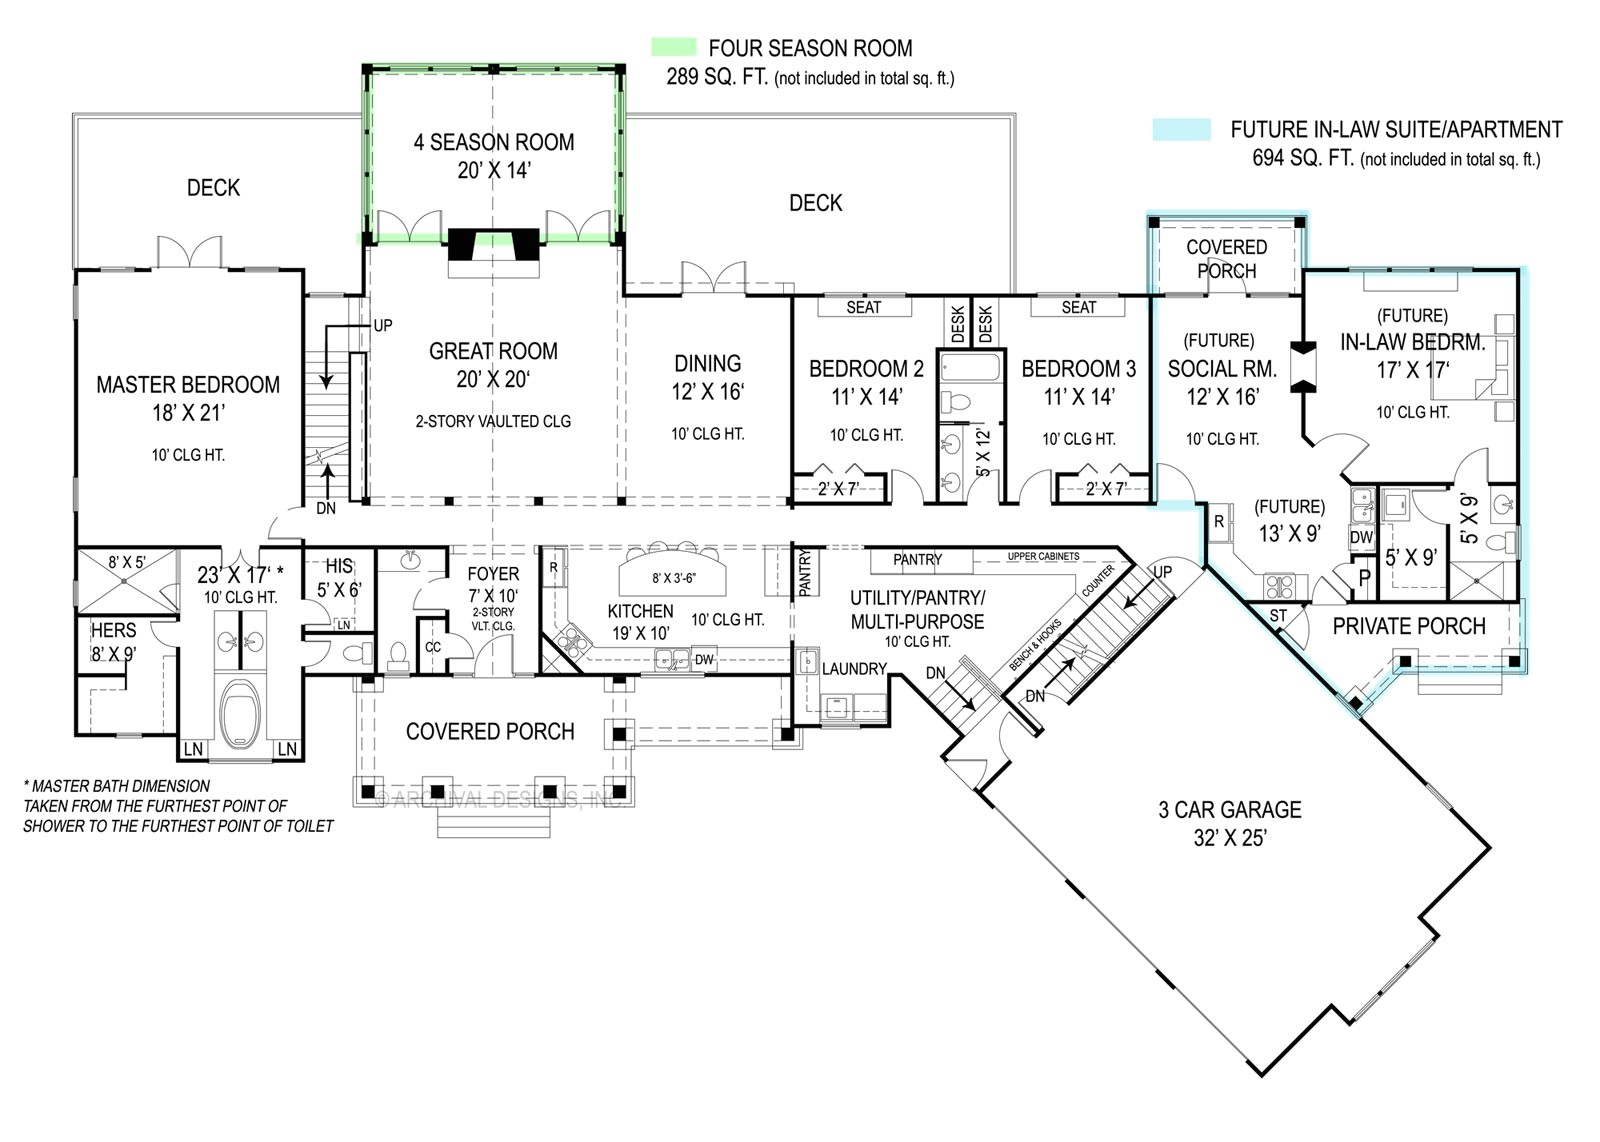 House Plans with Inlaw Suite On First Floor Pepperwood 9020 3 Bedrooms and 2 Baths the House Designers